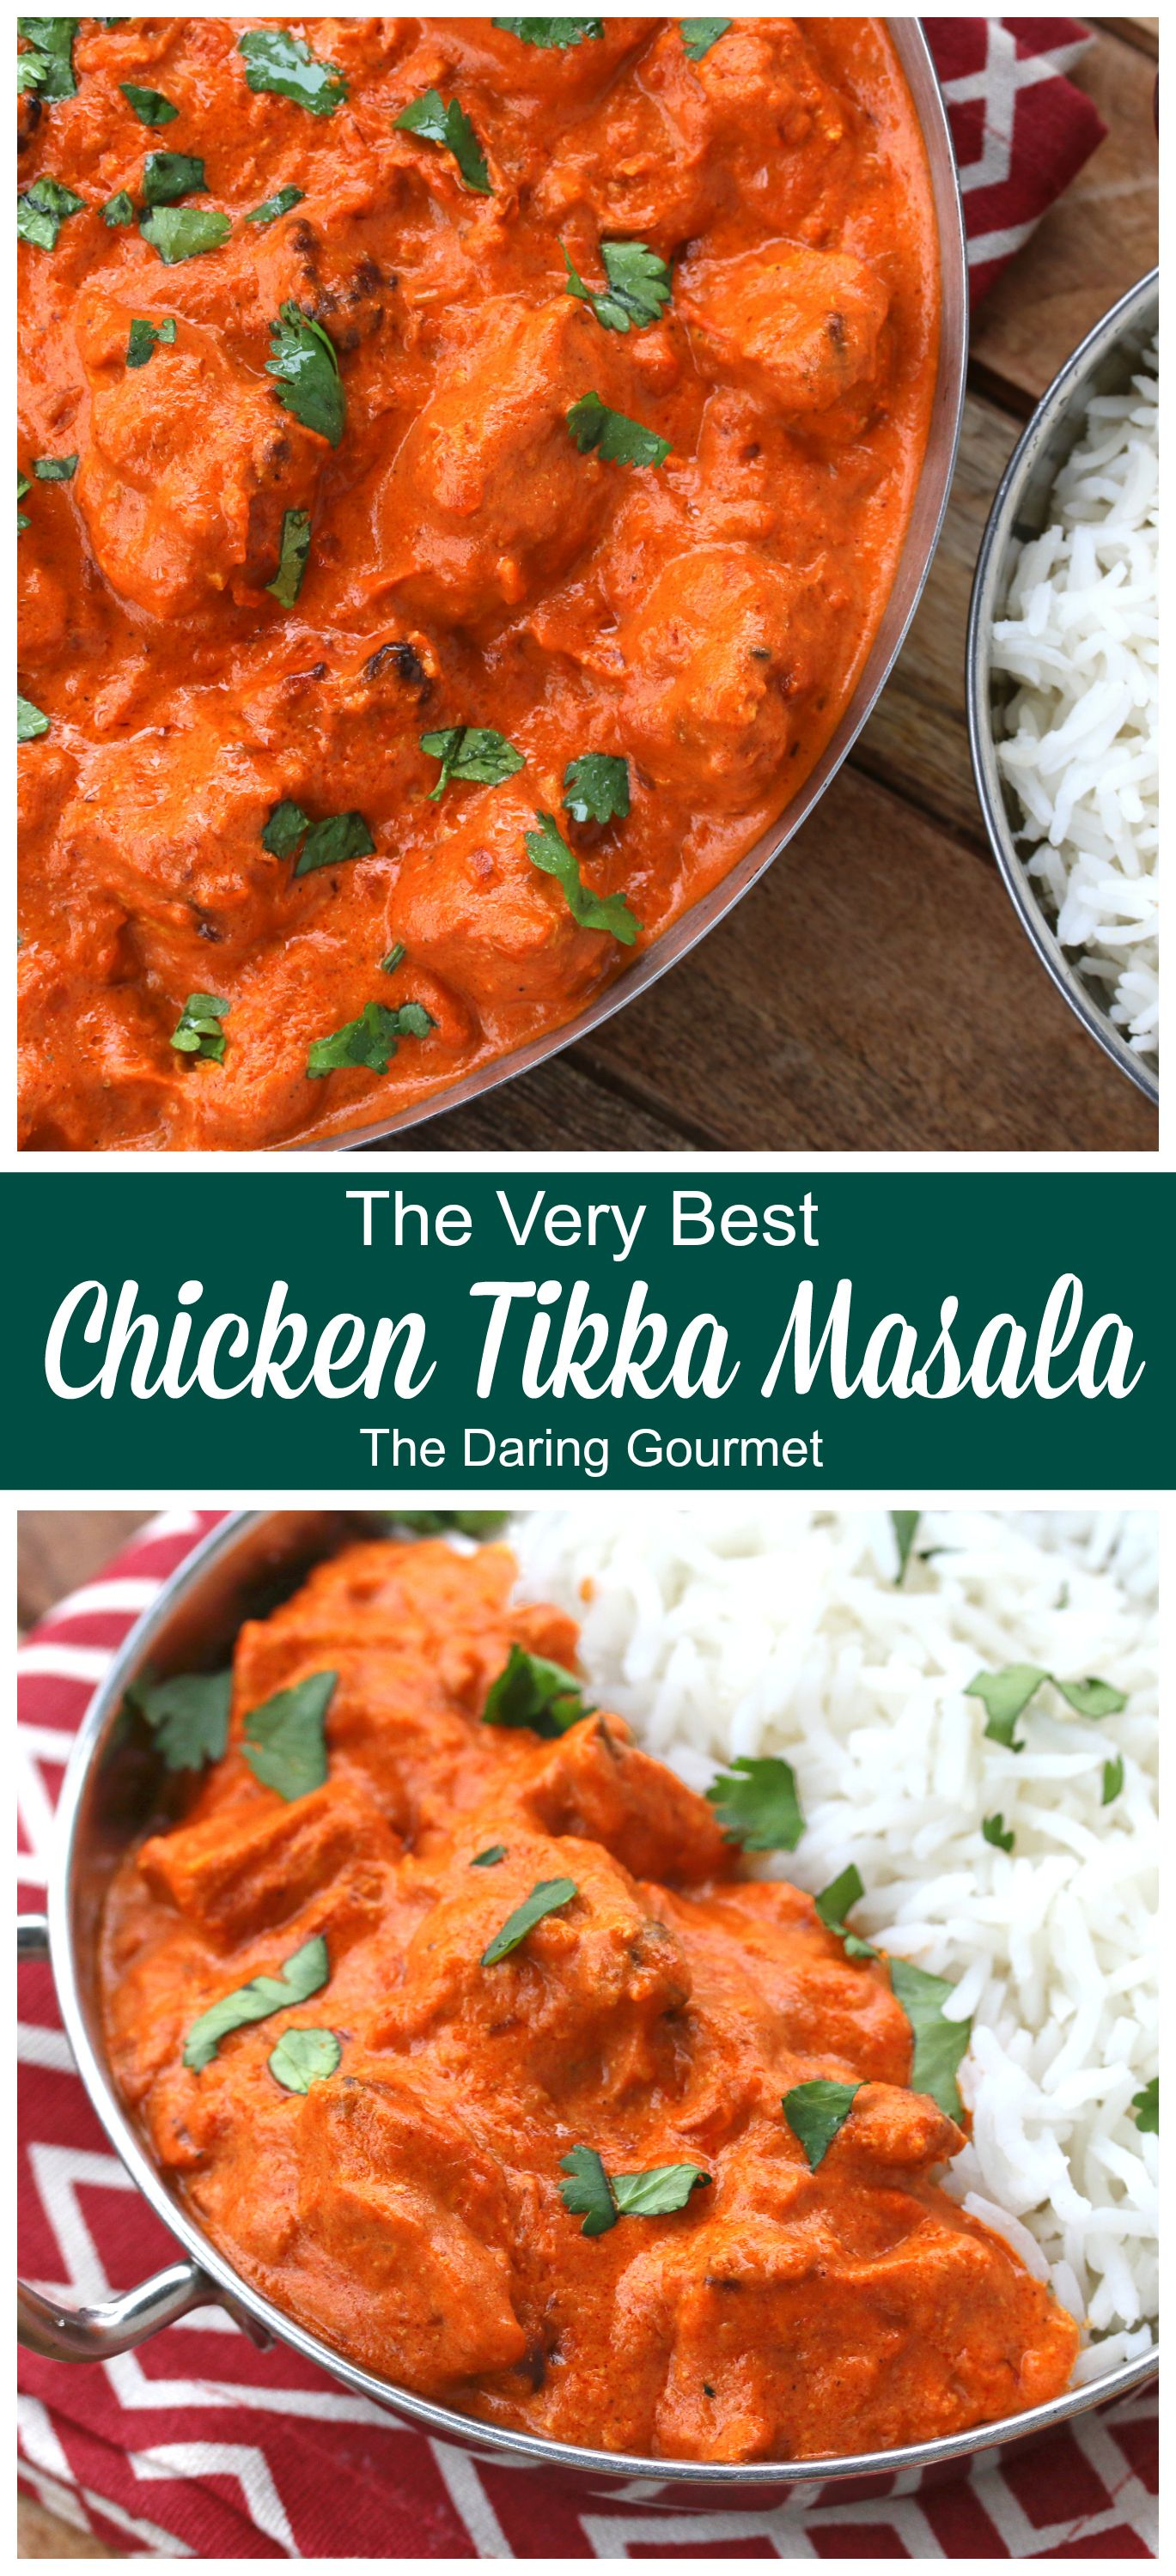 Chicken Tikka Masala Recipe Chicken Tikka Masala Recipes Tikka Masala Chicken Tikka